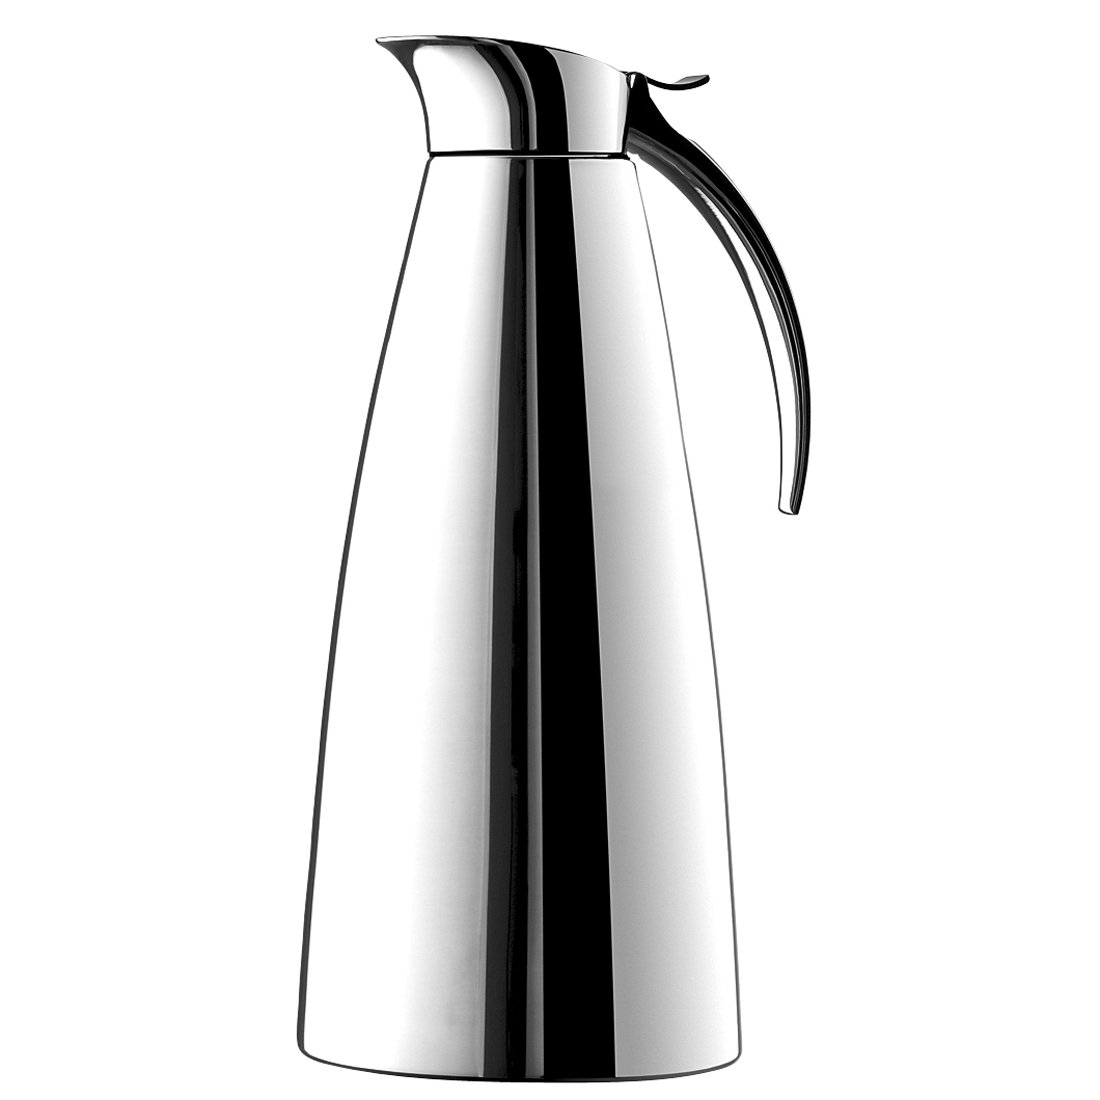 Emsa Eleganza Stainless Steel Insulated Carafe, 44-Ounce